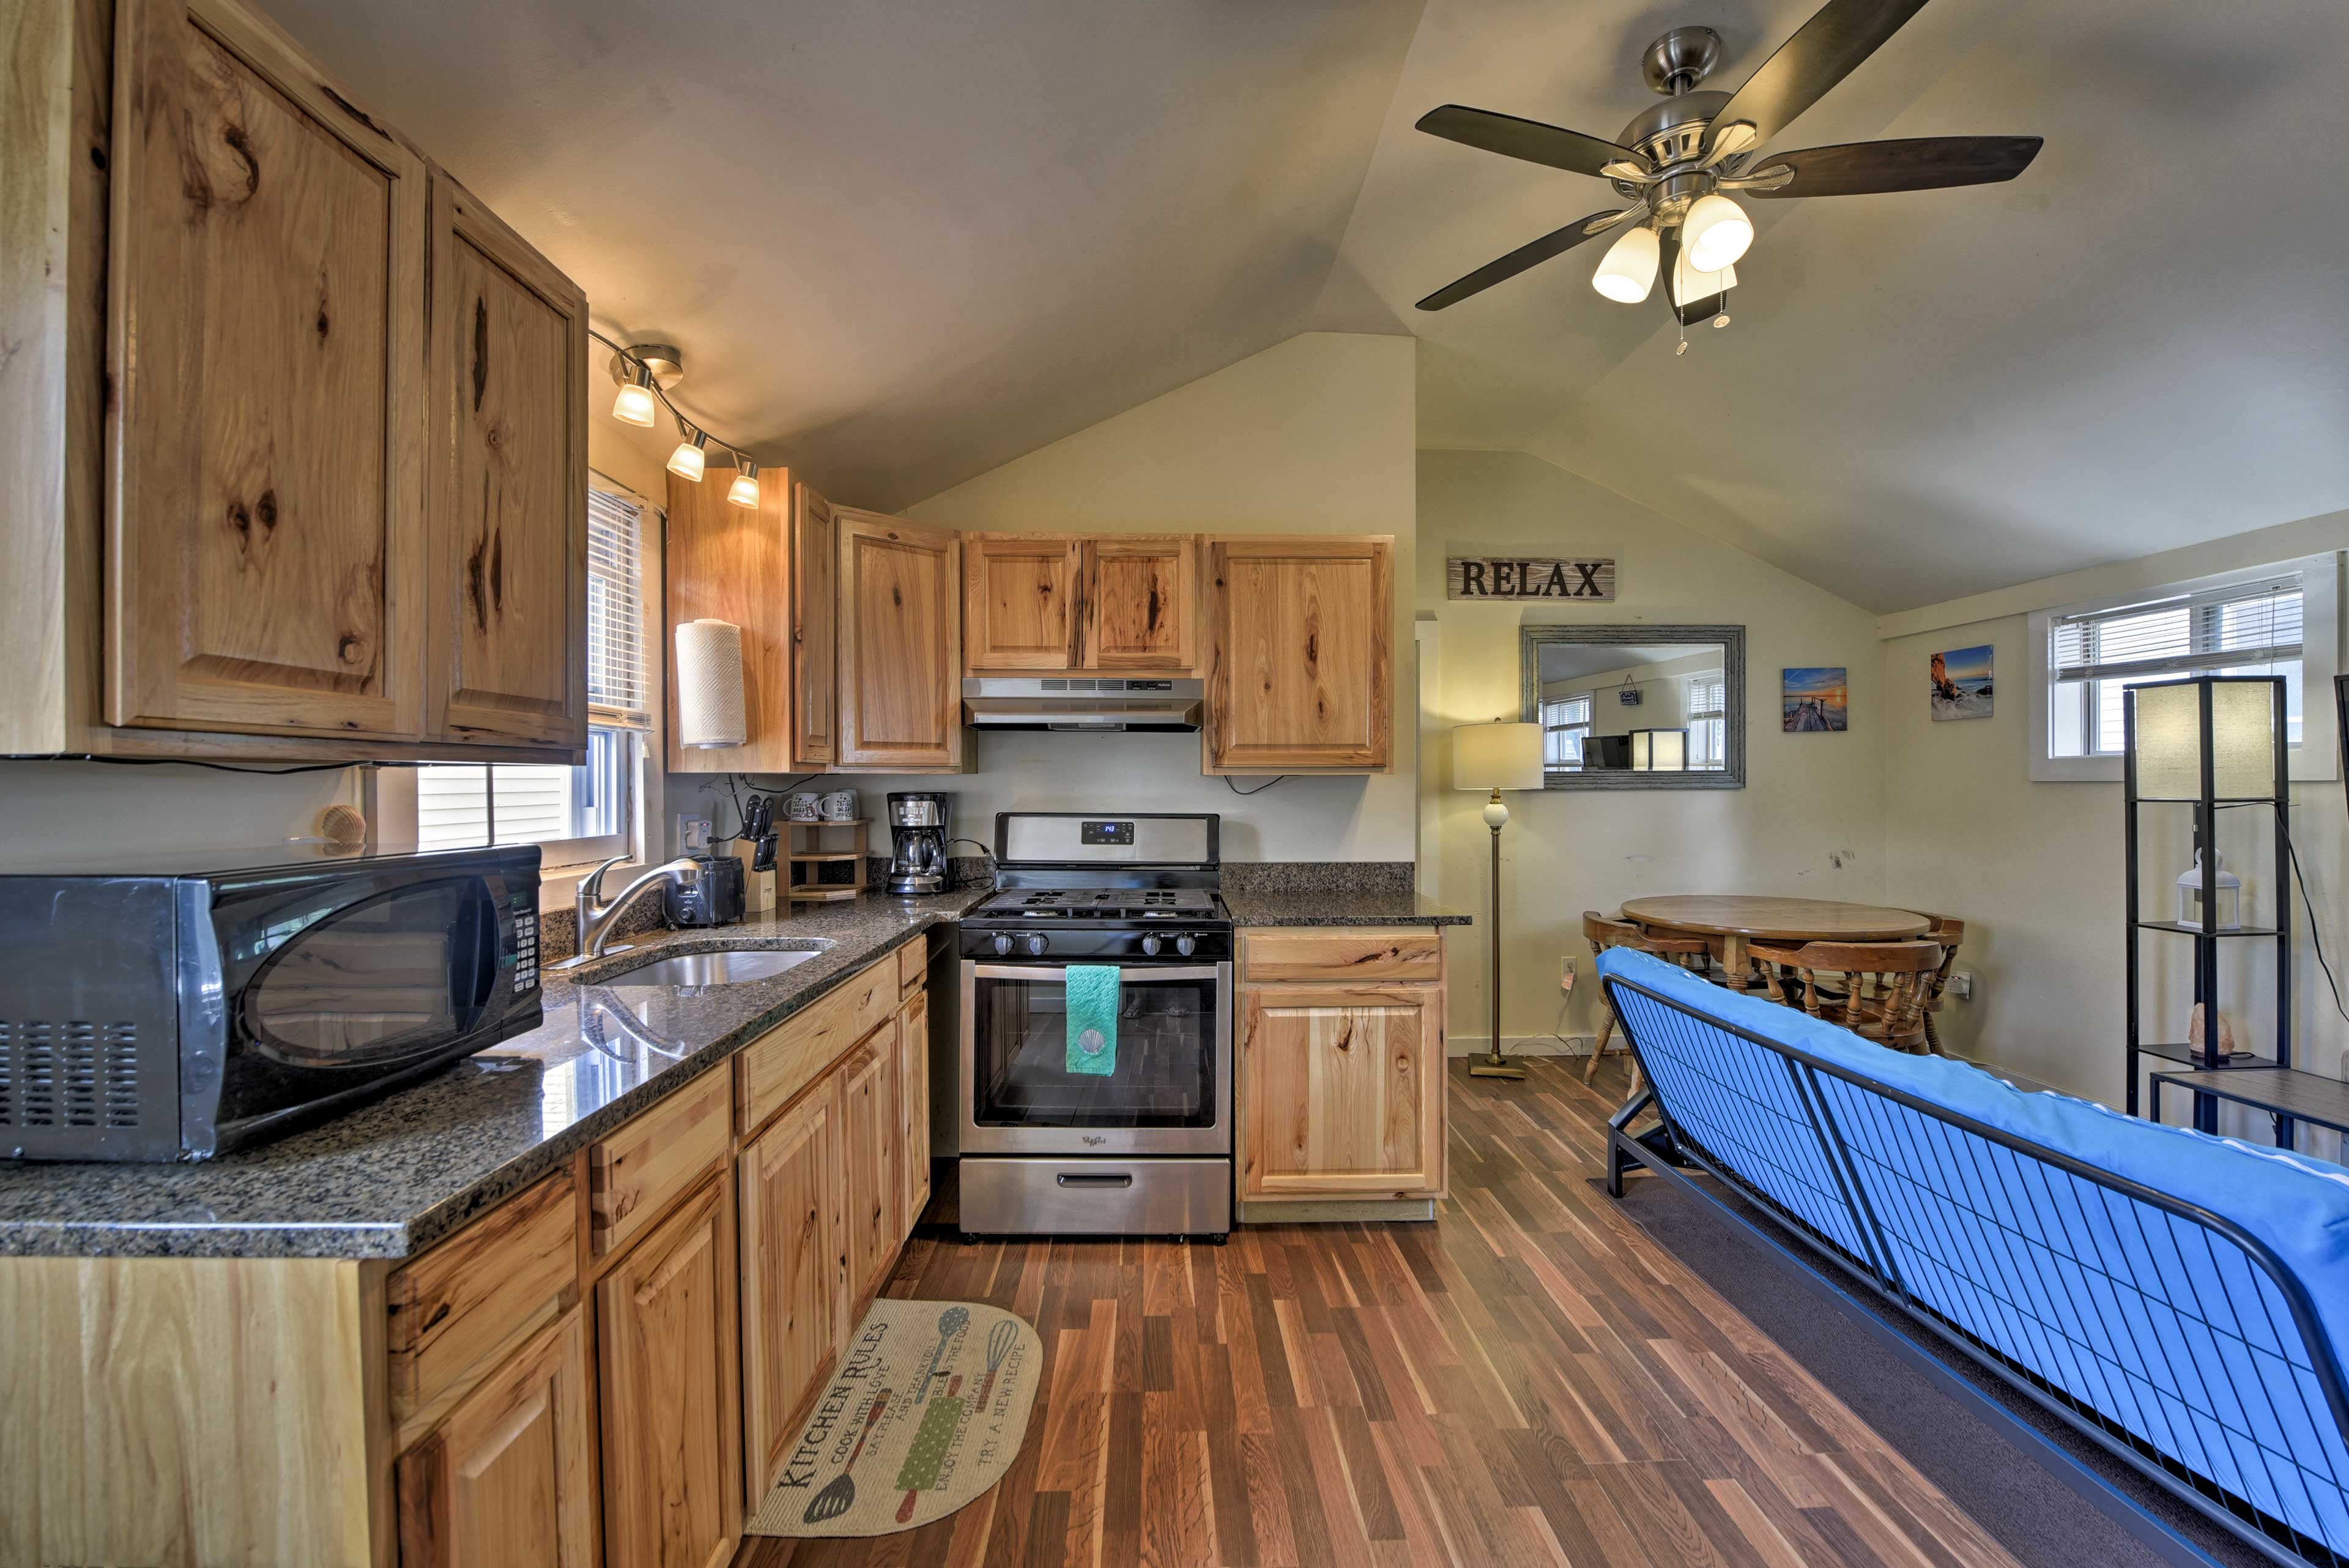 ,The spacious interior offers all the comforts of home!